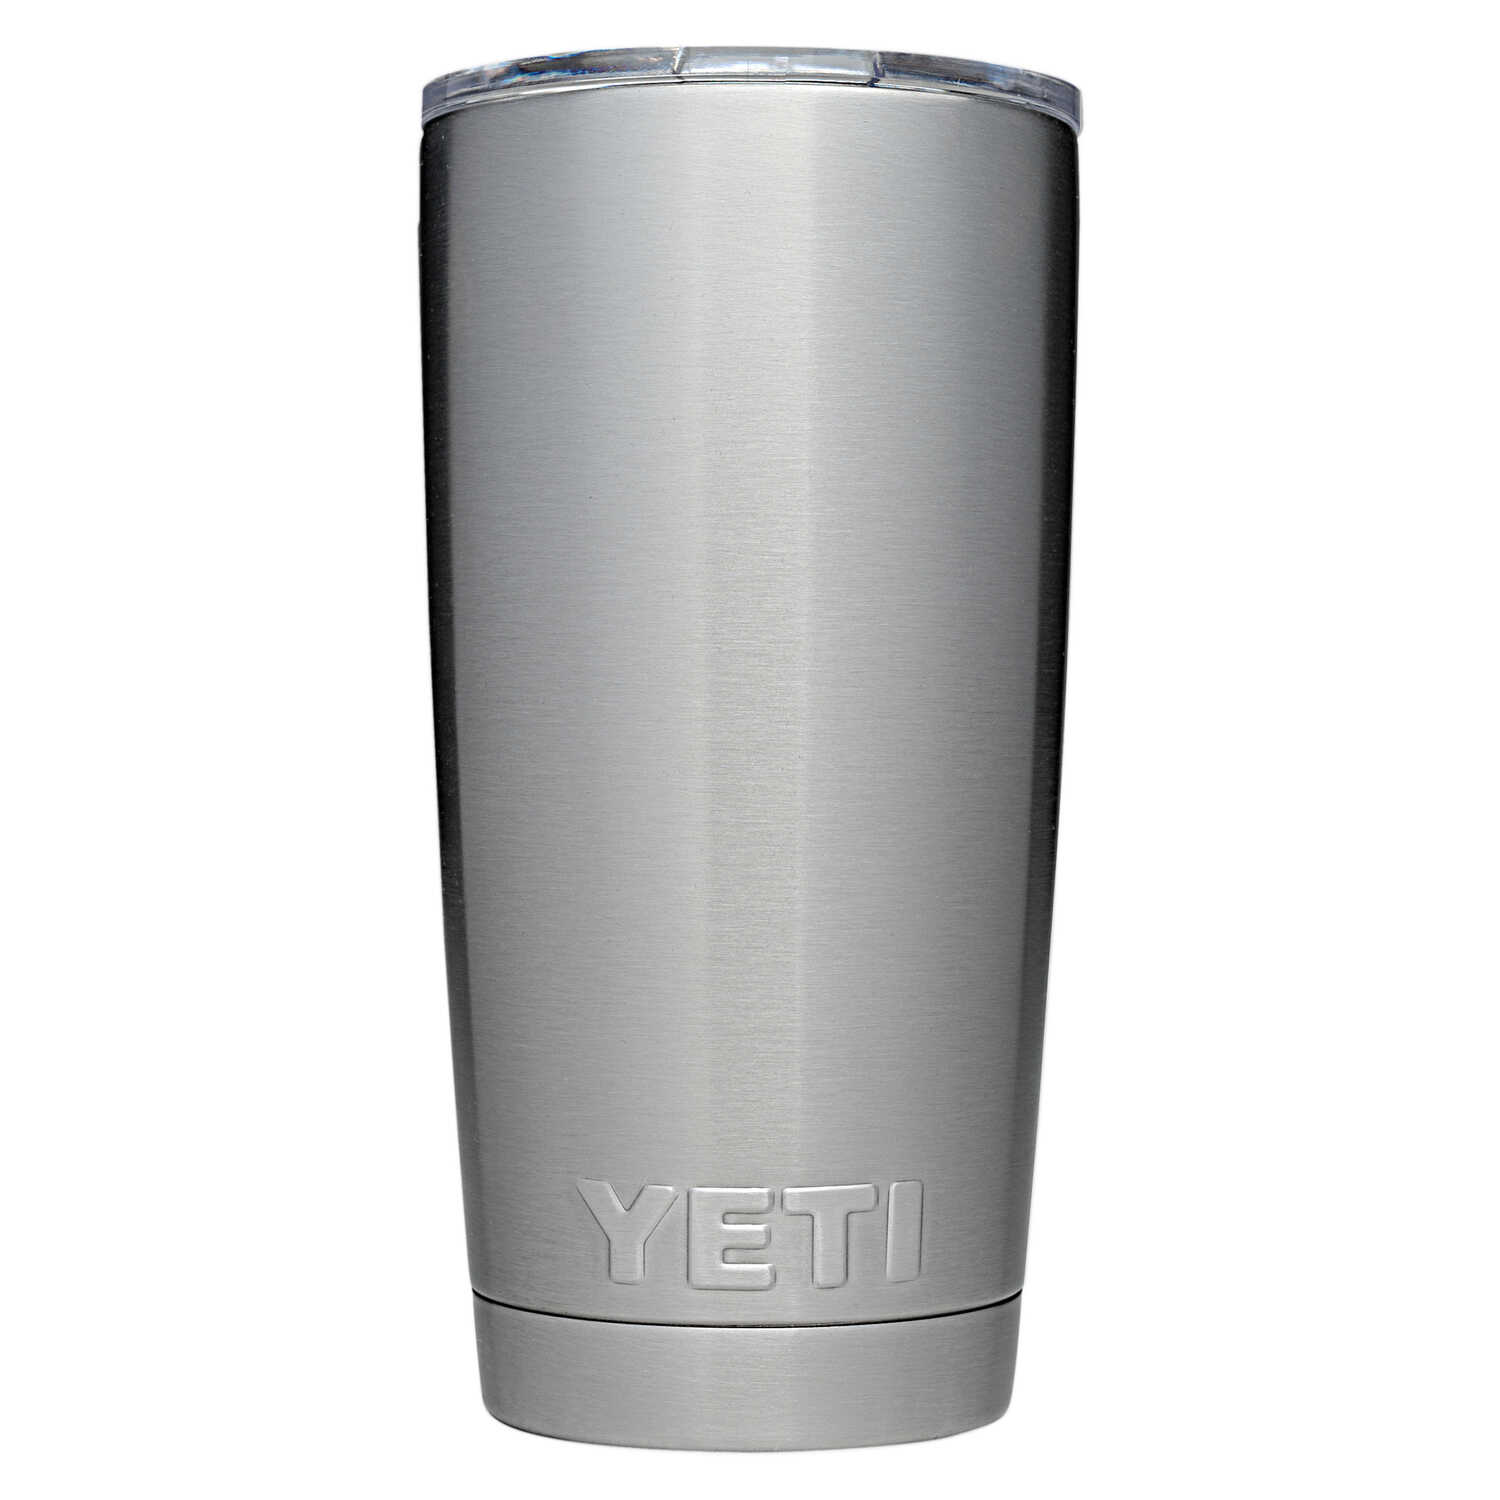 Yeti Cup Prices >> Yeti Rambler 20 Oz Tumbler With Magslider Lid Silver Ace Hardware